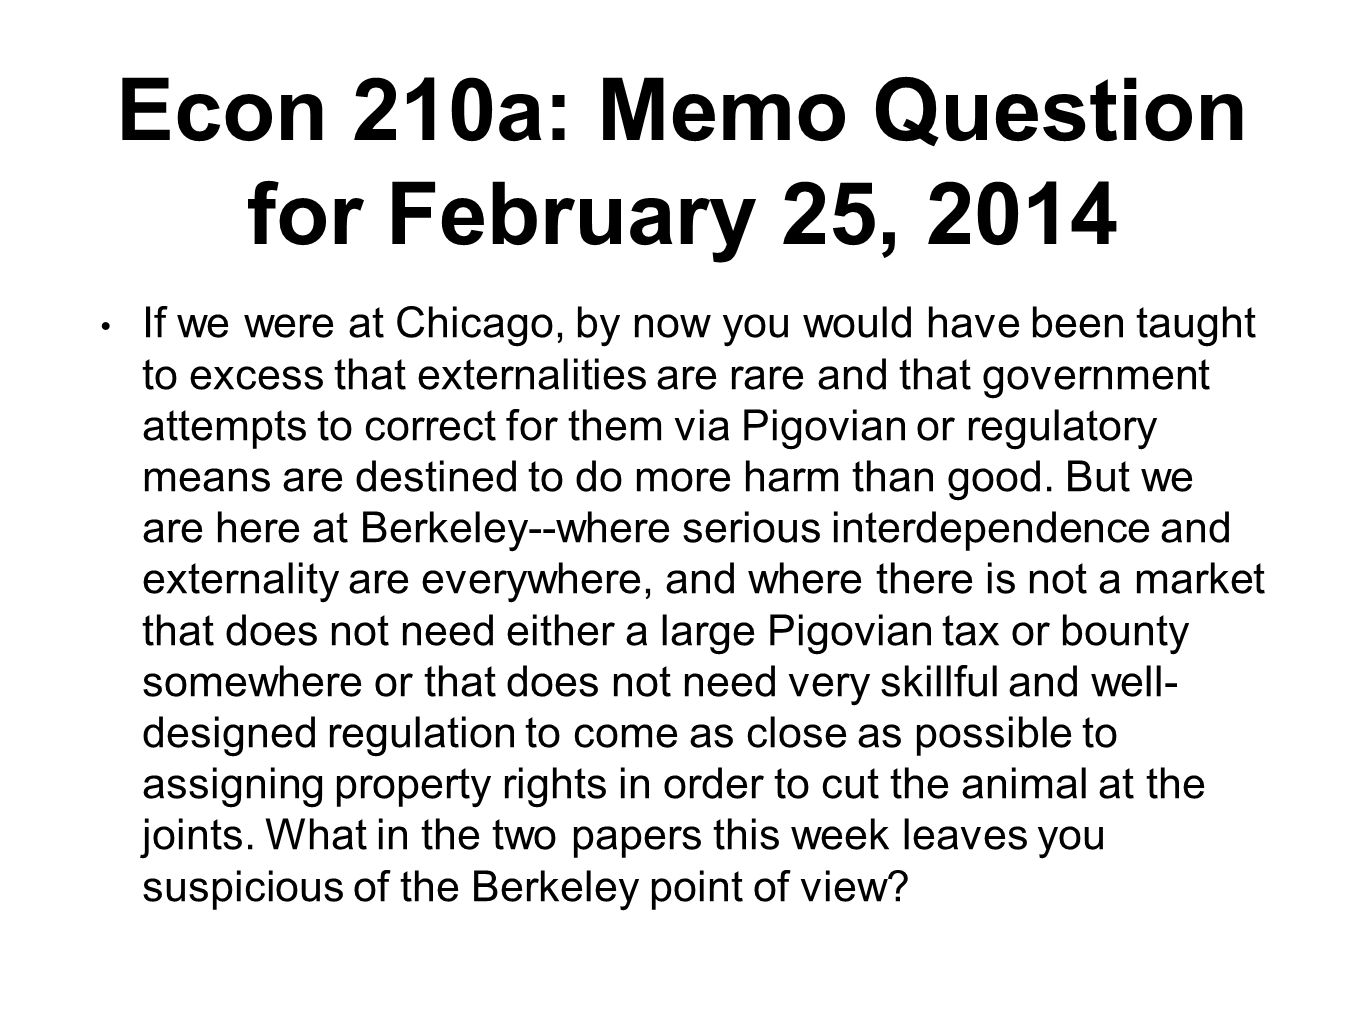 Econ 210a: Memo Question for February 25, 2014 If we were at Chicago, by now you would have been taught to excess that externalities are rare and that government attempts to correct for them via Pigovian or regulatory means are destined to do more harm than good.